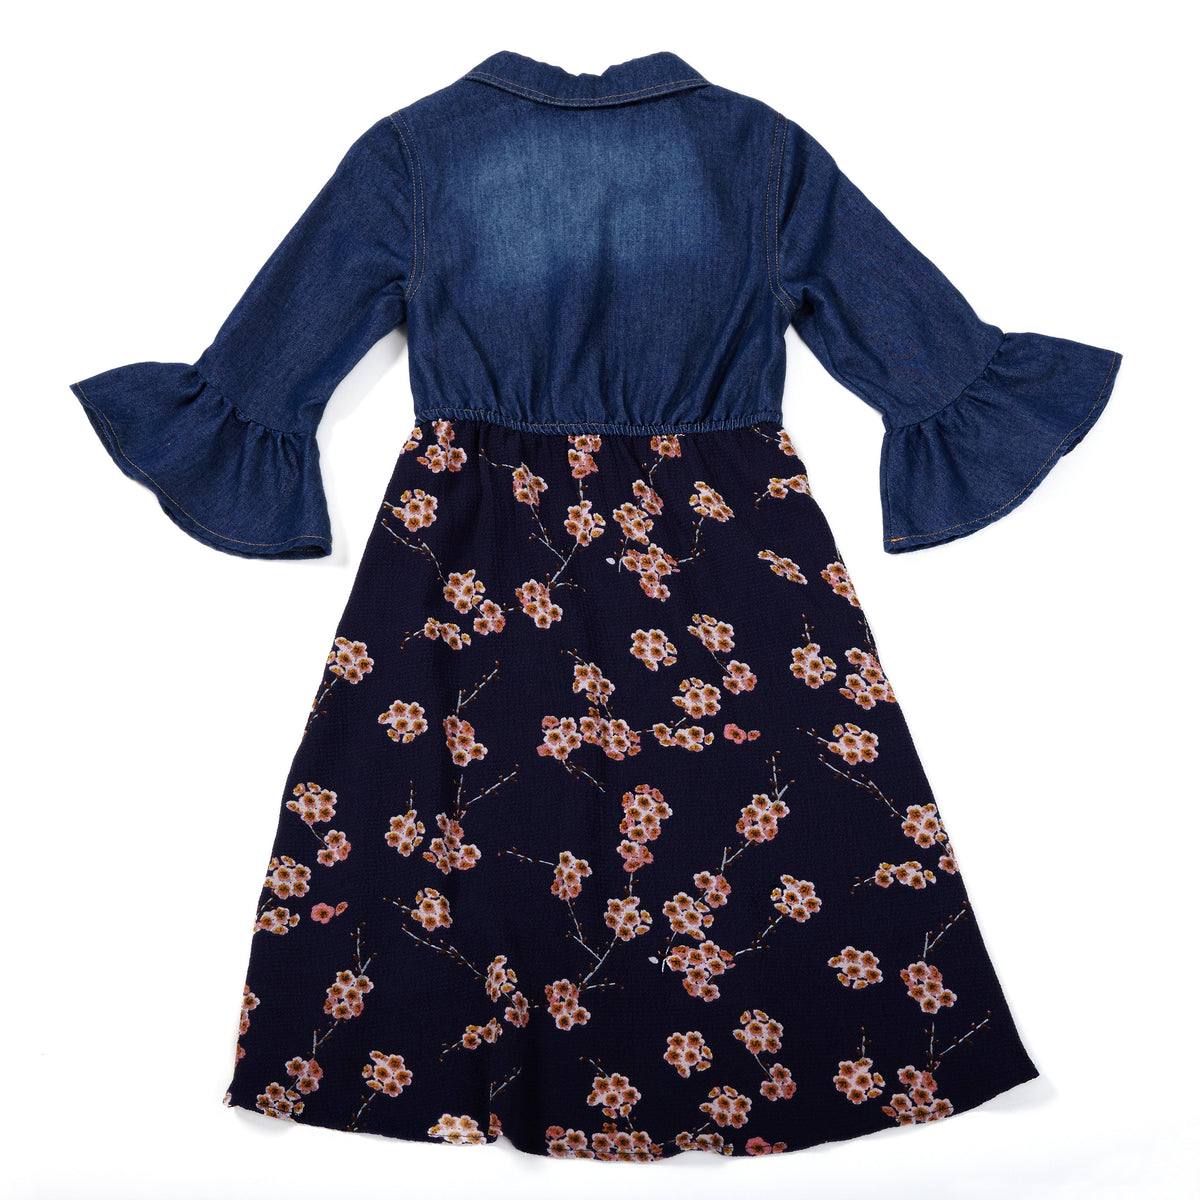 e490e30a1384 Girls Navy Blue Floral Dress, Chambray, Bell Sleeves,Toddler,Size 4 ...